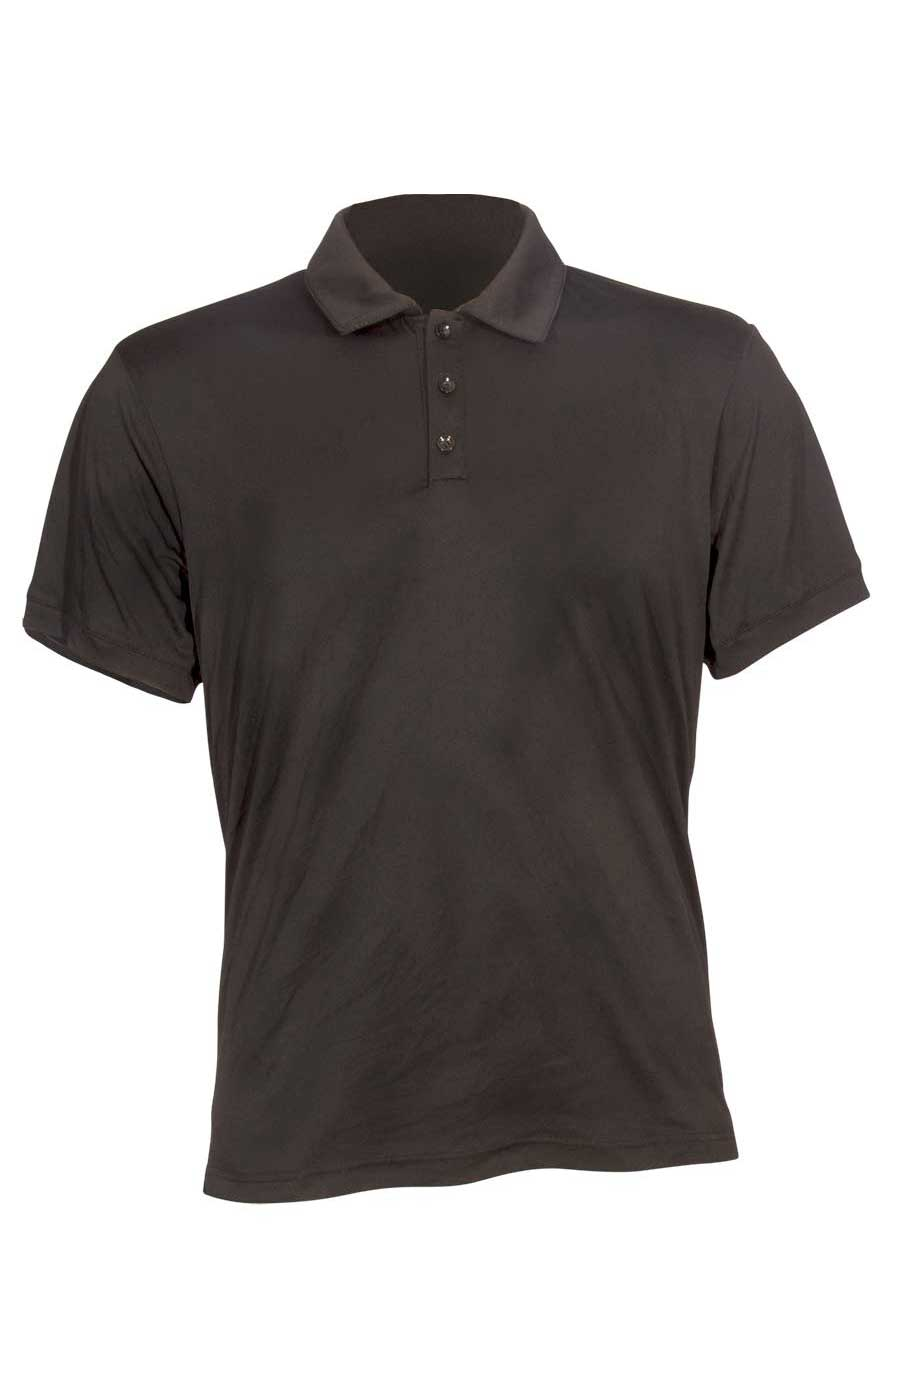 Mens Travel Polo Shirt